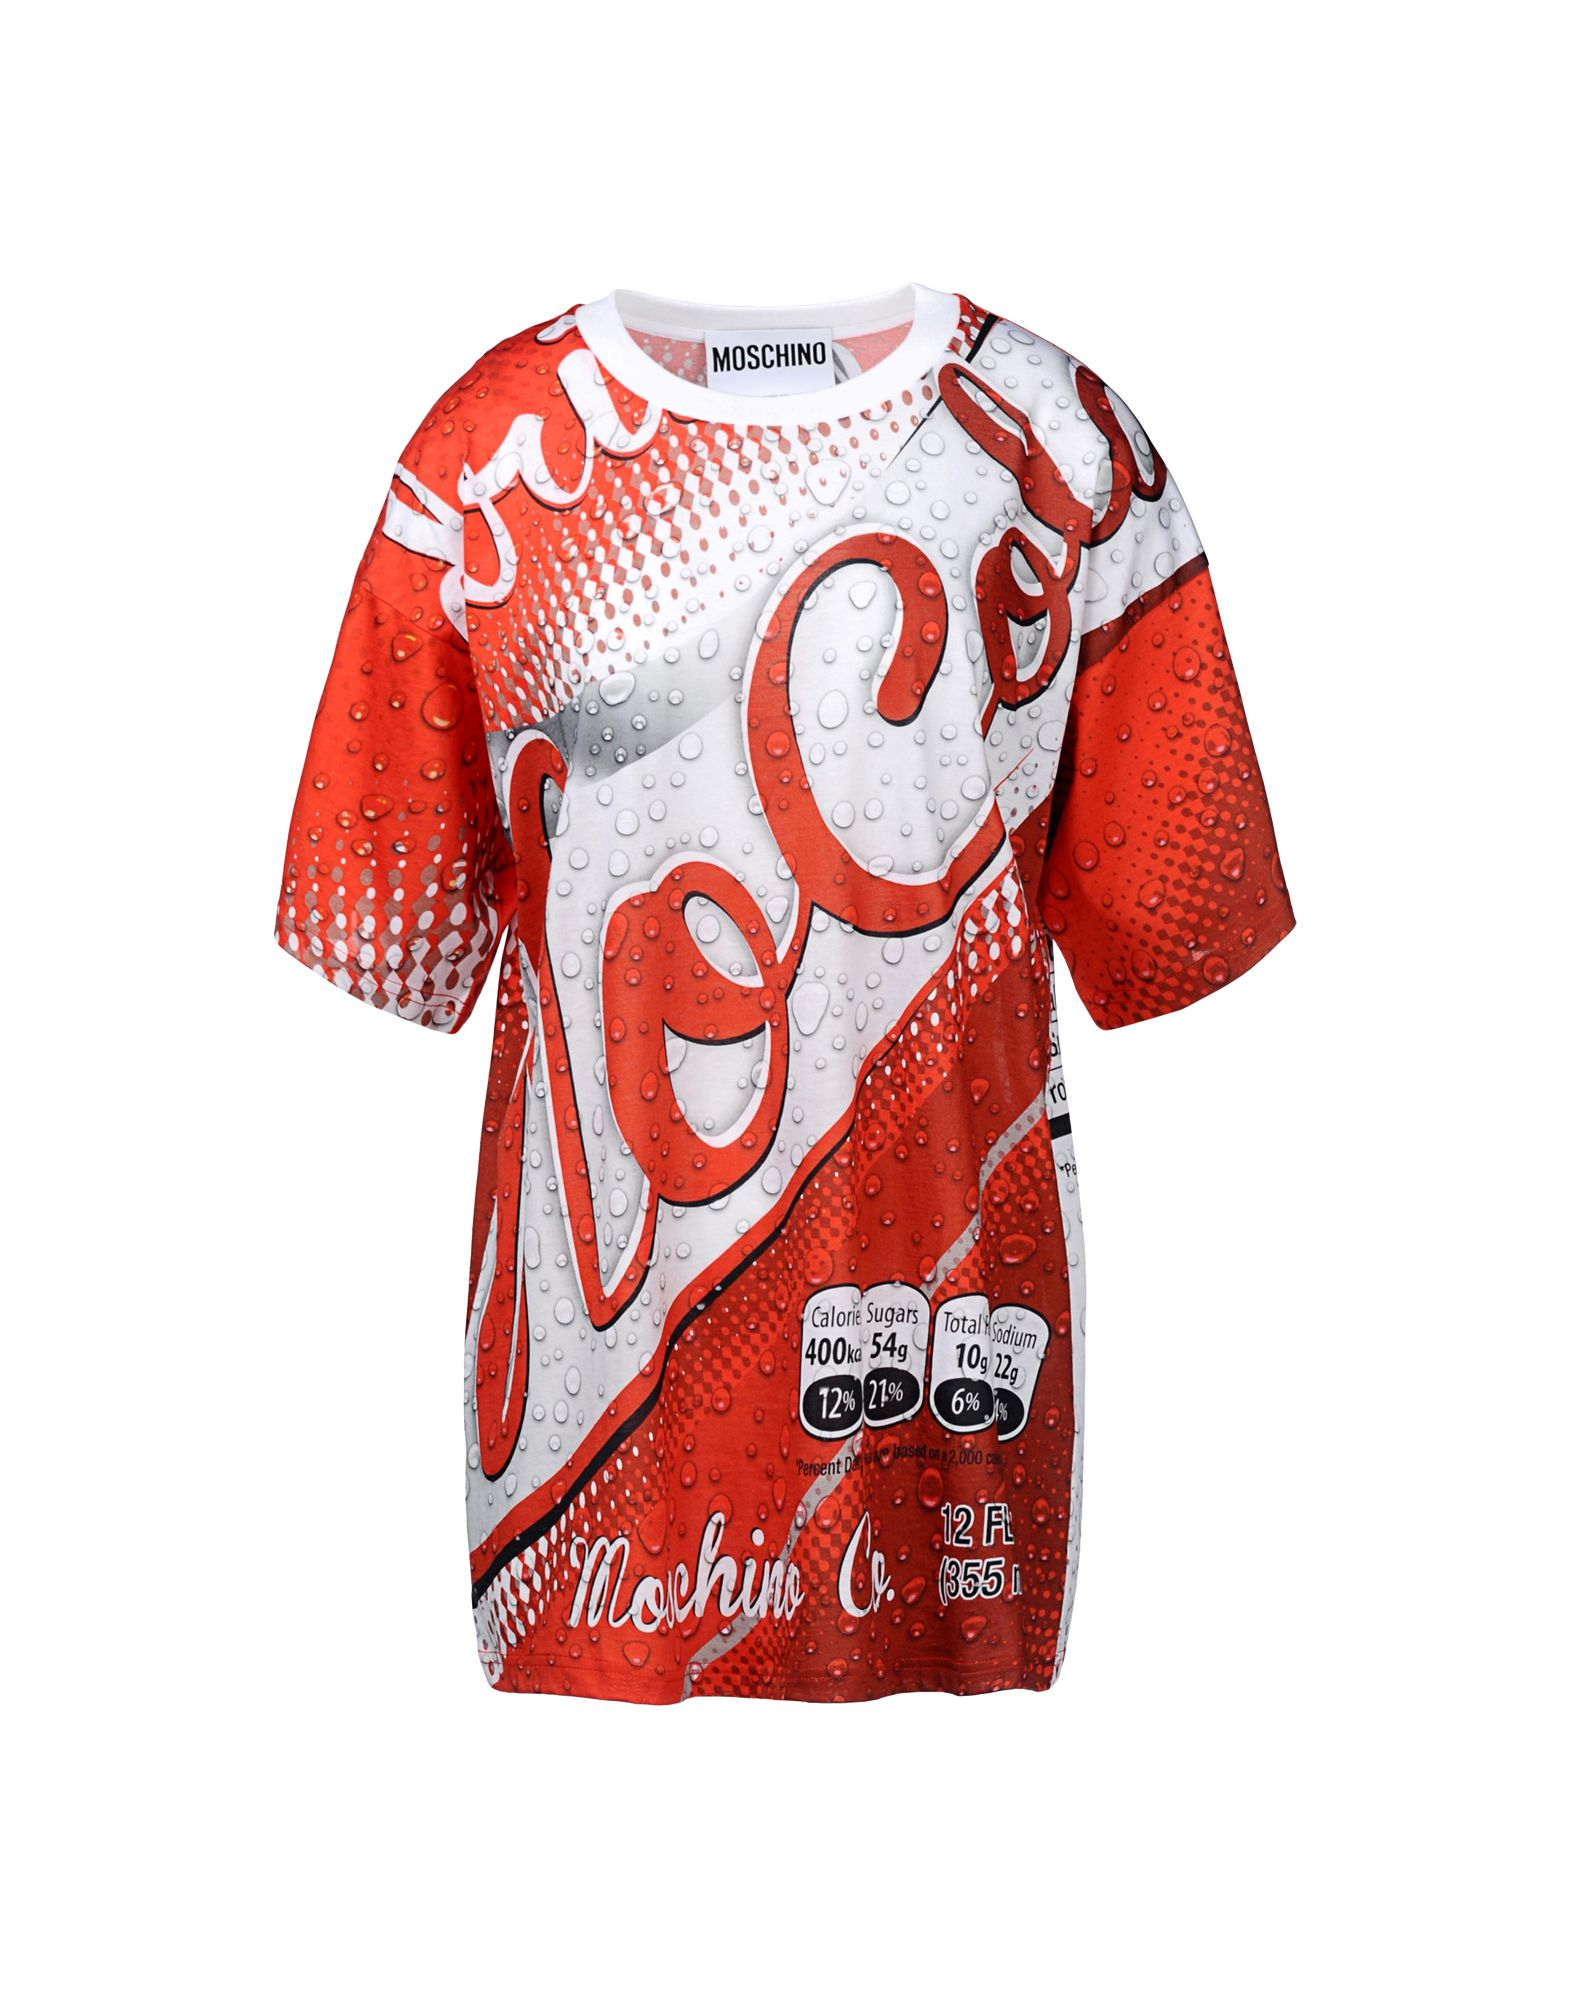 moschino 39 coca cola 39 t shirt in red lyst. Black Bedroom Furniture Sets. Home Design Ideas